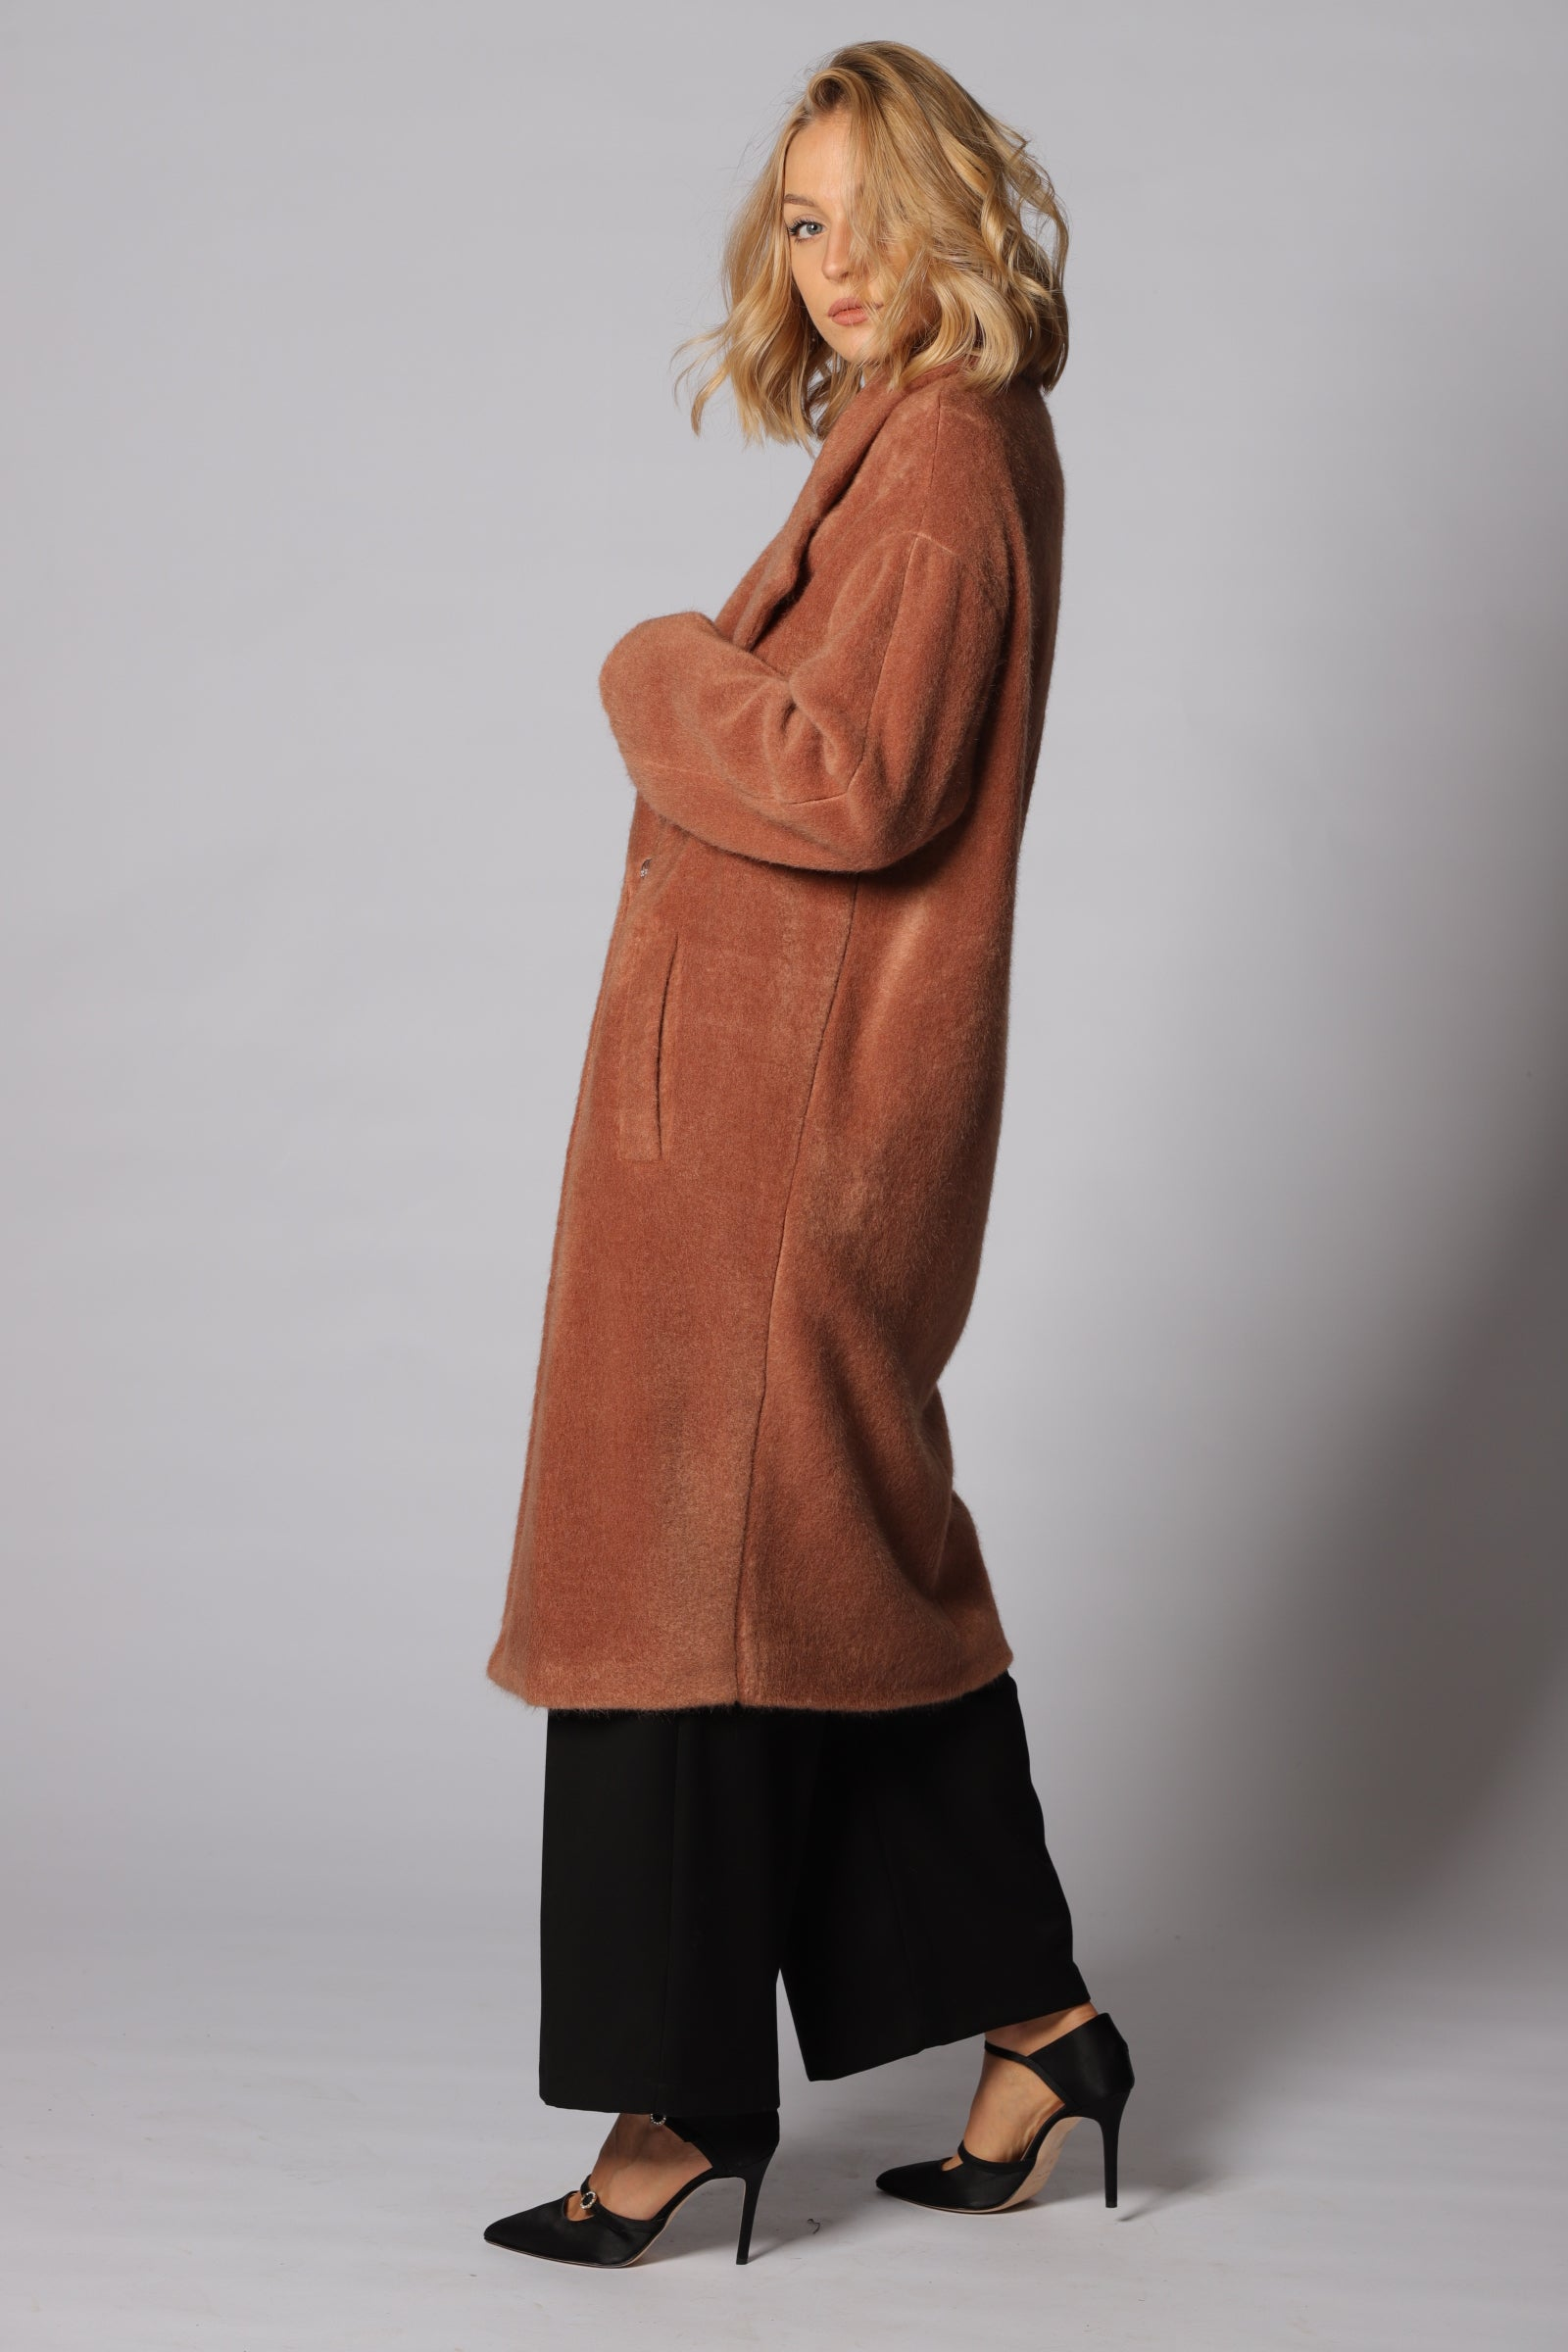 Nora Barth Factory Group - Nora Barth Cappotto Over Effetto Alpaca Art. 17864 - 160